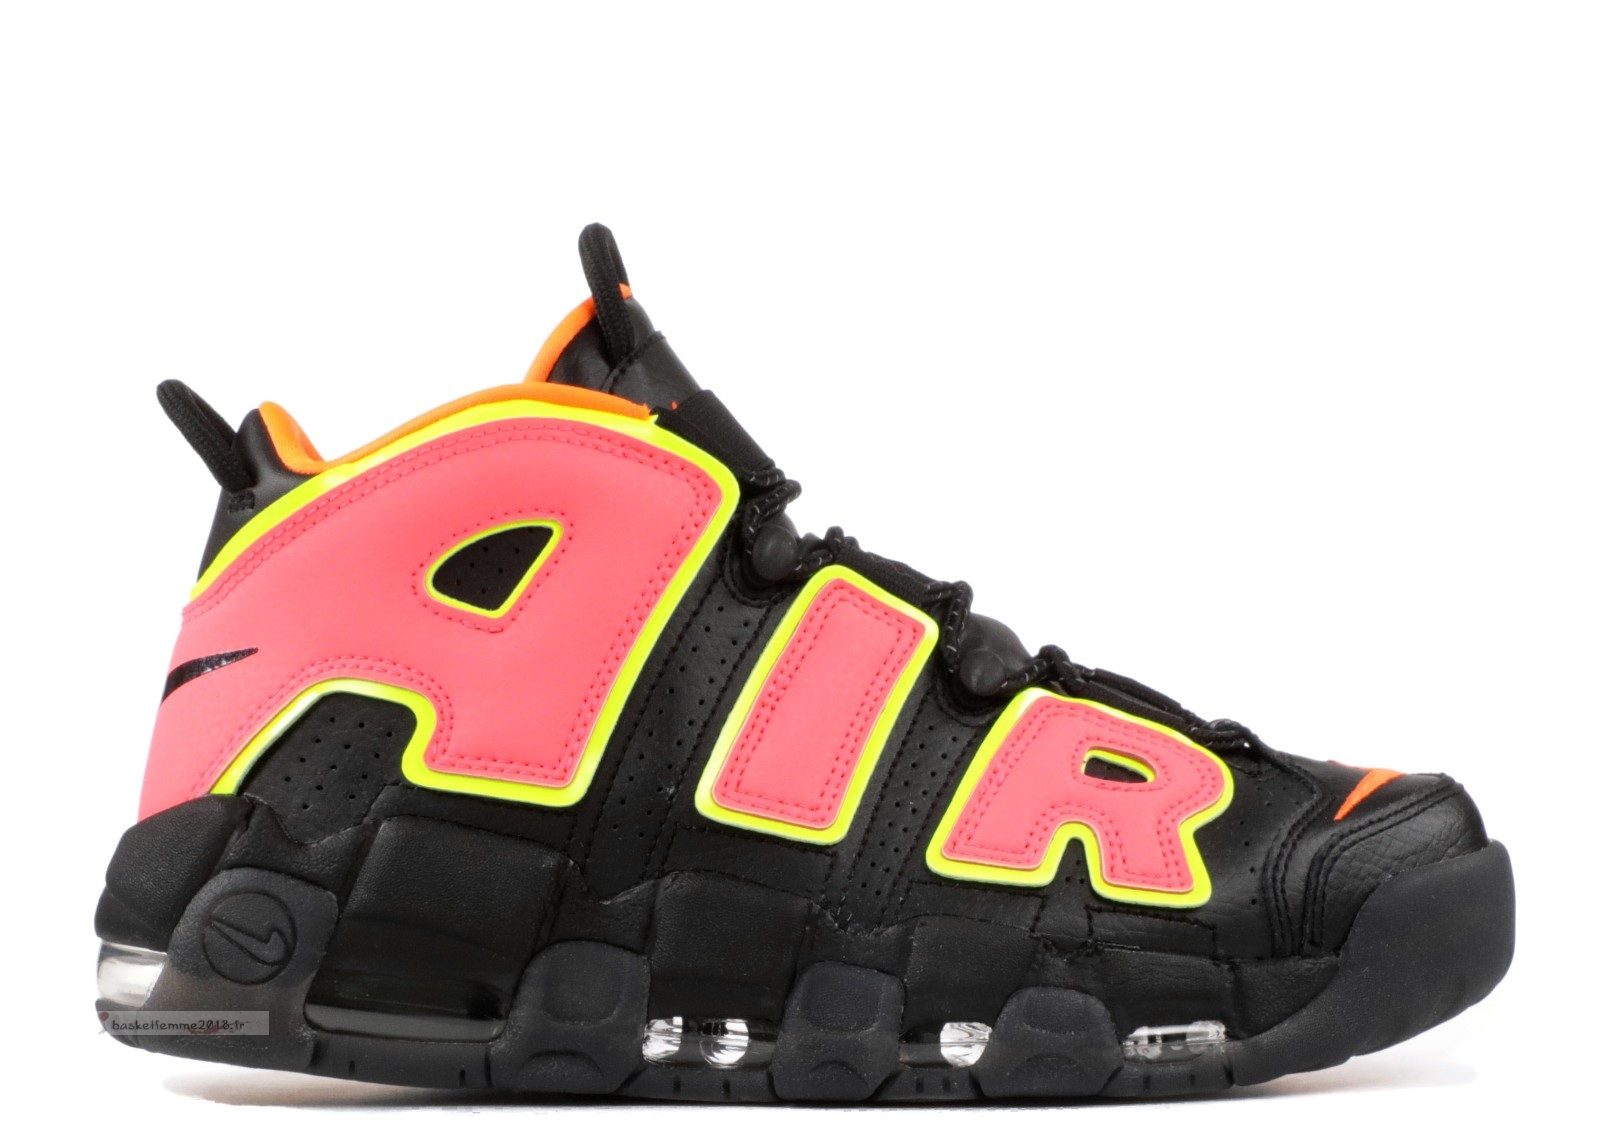 Nike Air More Uptempo Femme Noir Orange (917593-002) Chaussure de Basket